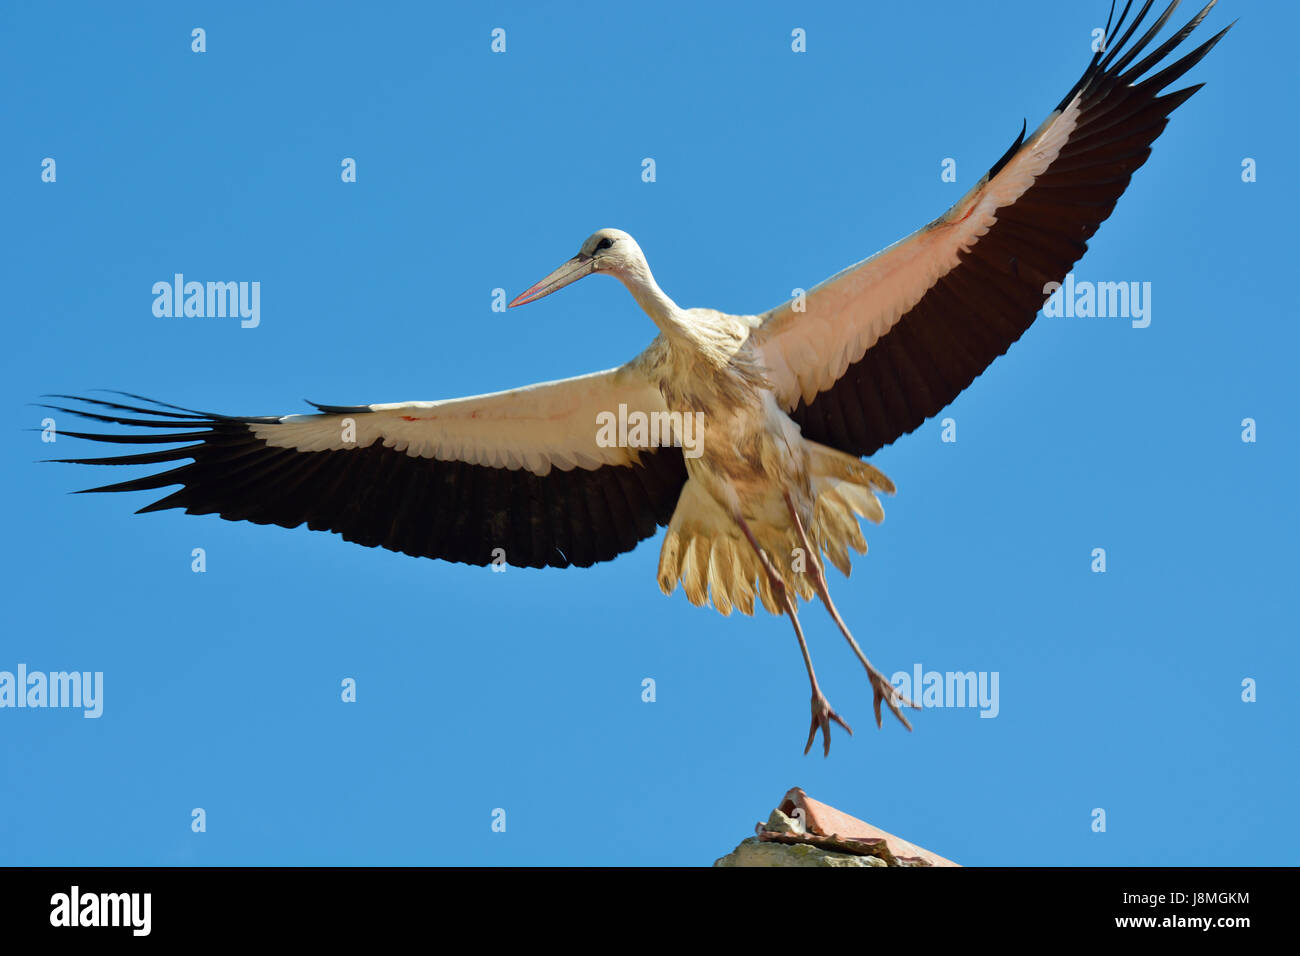 Stork (Ciconia ciconia) flying at the Sado Estuary Nature Reserve. Portugal Stock Photo